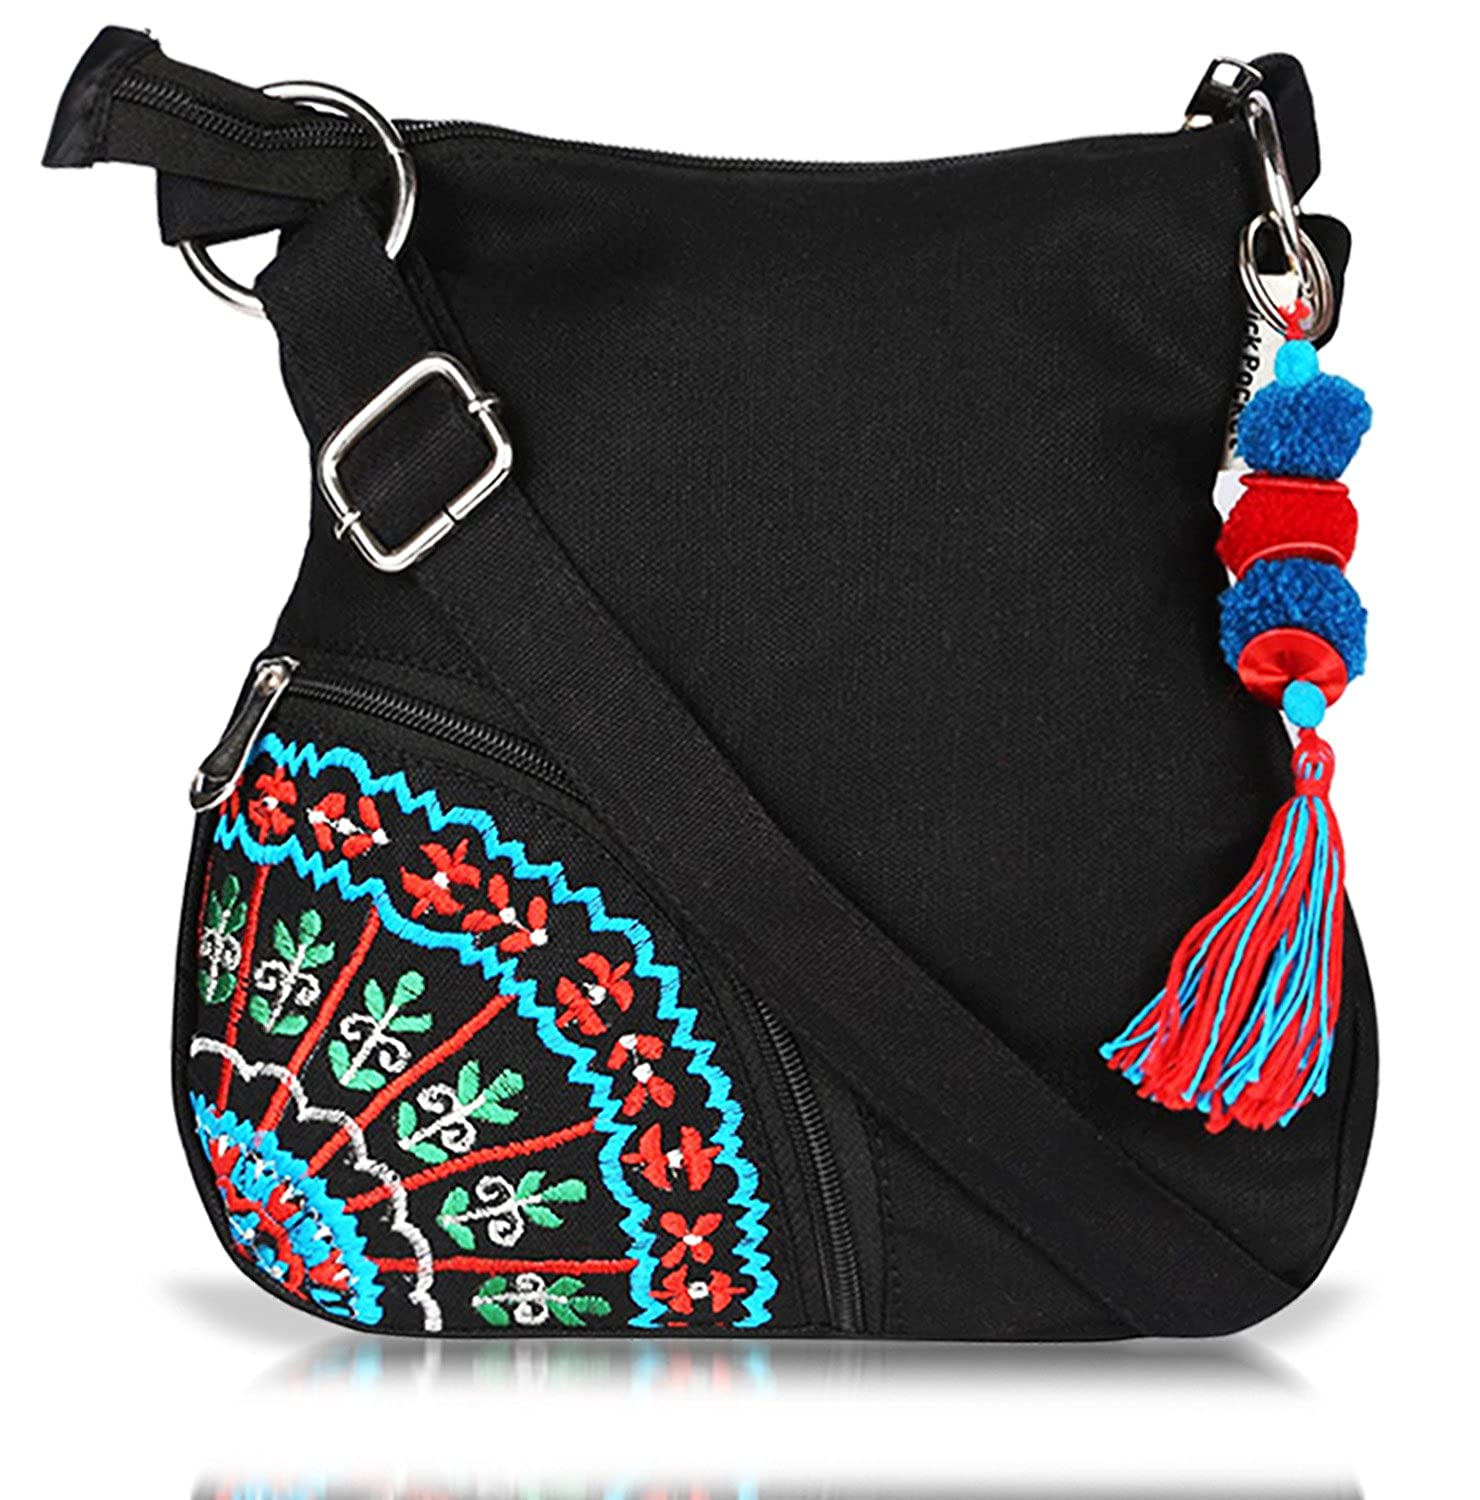 Sling Bag Pick Pocket Women's Sling Bag (Black,Slblkbside55 ...